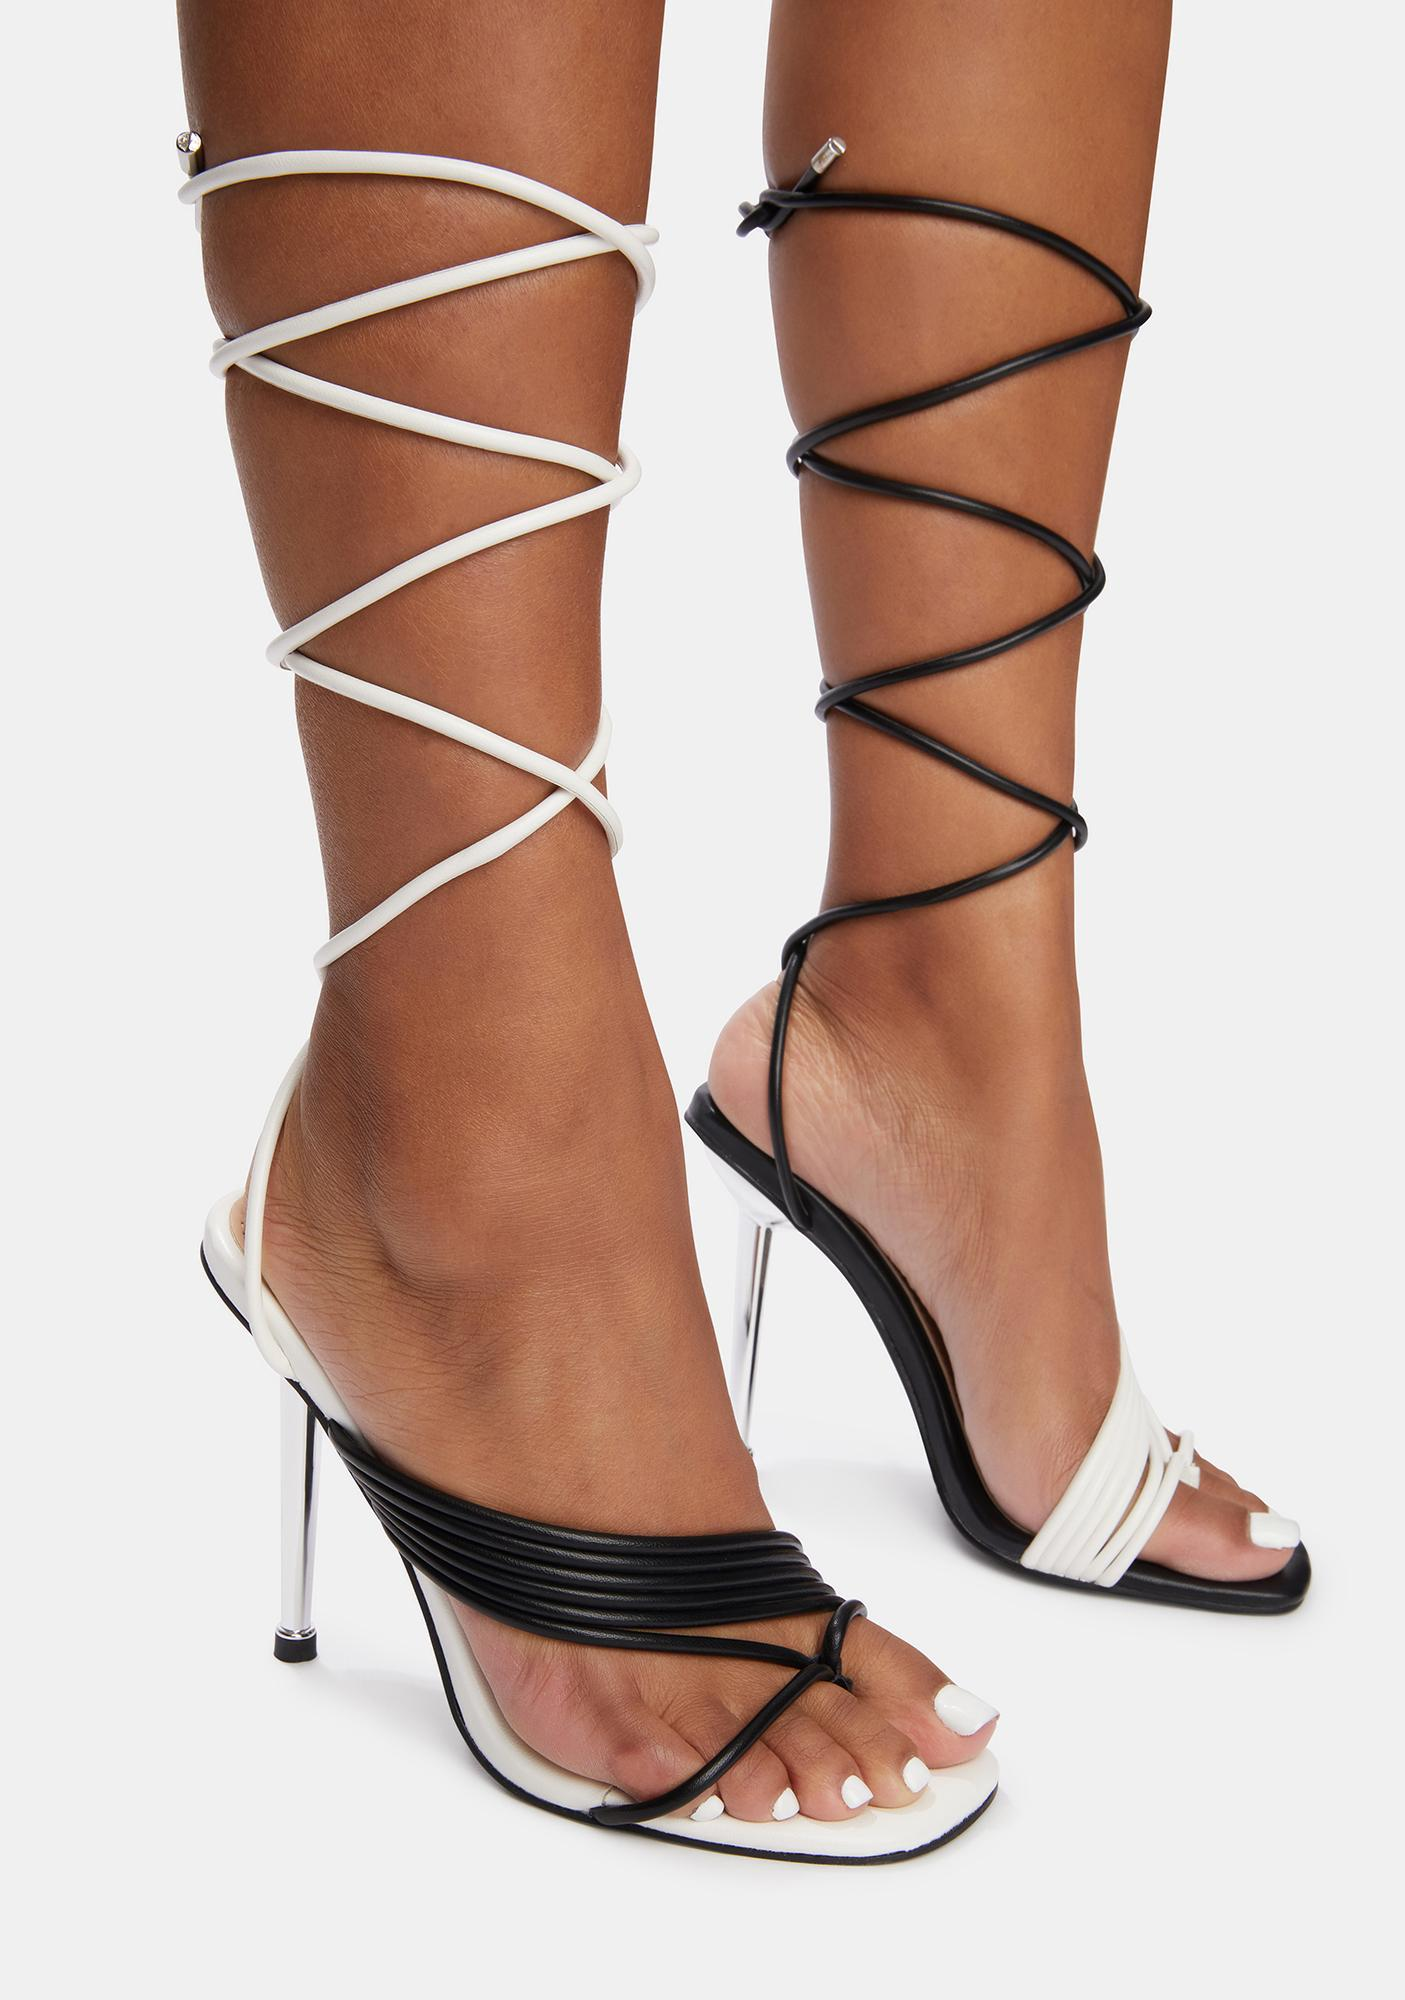 AZALEA WANG Laker Wrap Stiletto Sandals